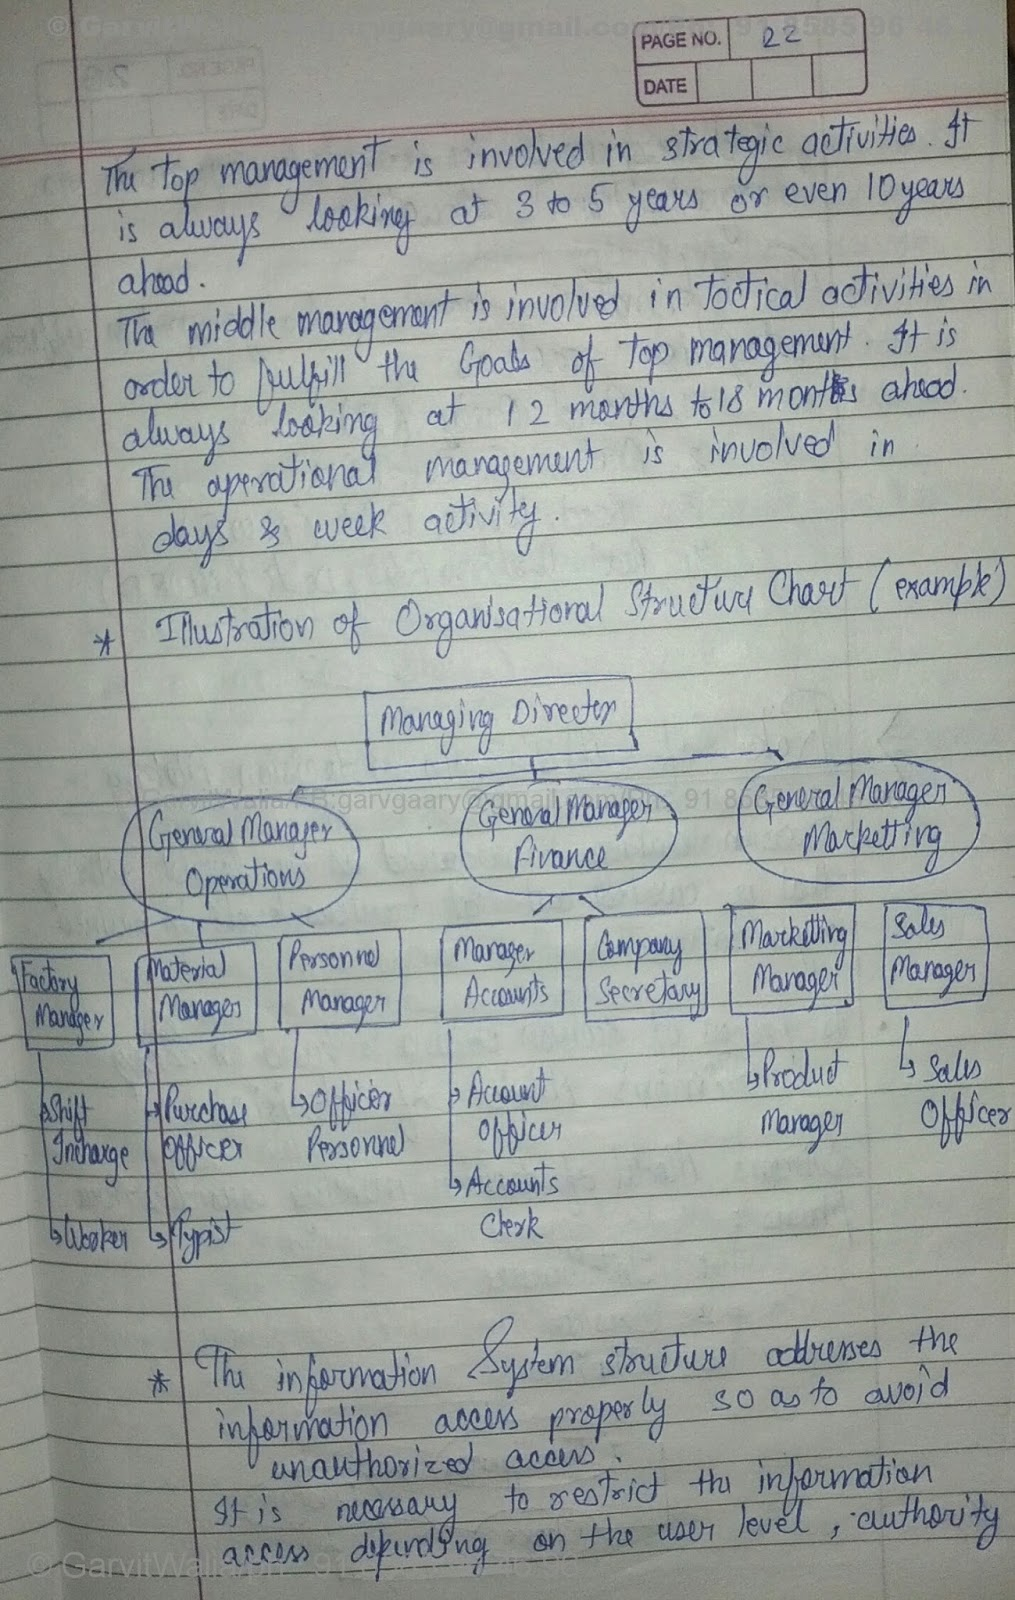 Mechanical engineering 6th semester management information system what is mis importance of mis organisational and information system structure role of mis in decision making pooptronica